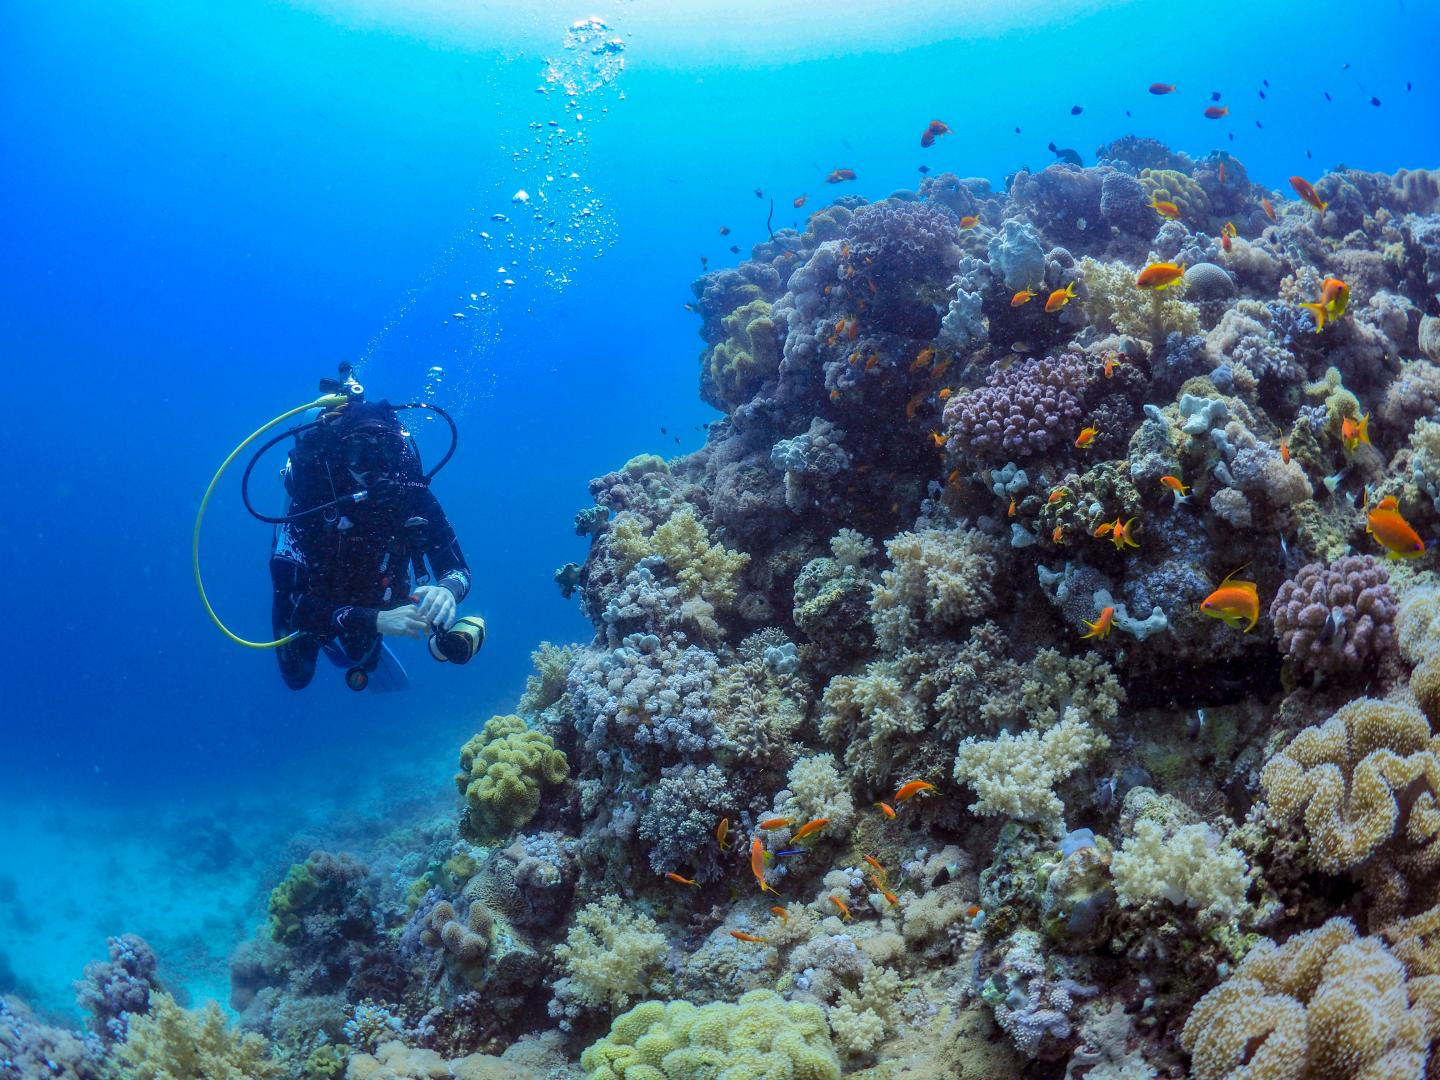 Studying corals in the Red Sea off the coast of Thuwal, Saudi Arabia.